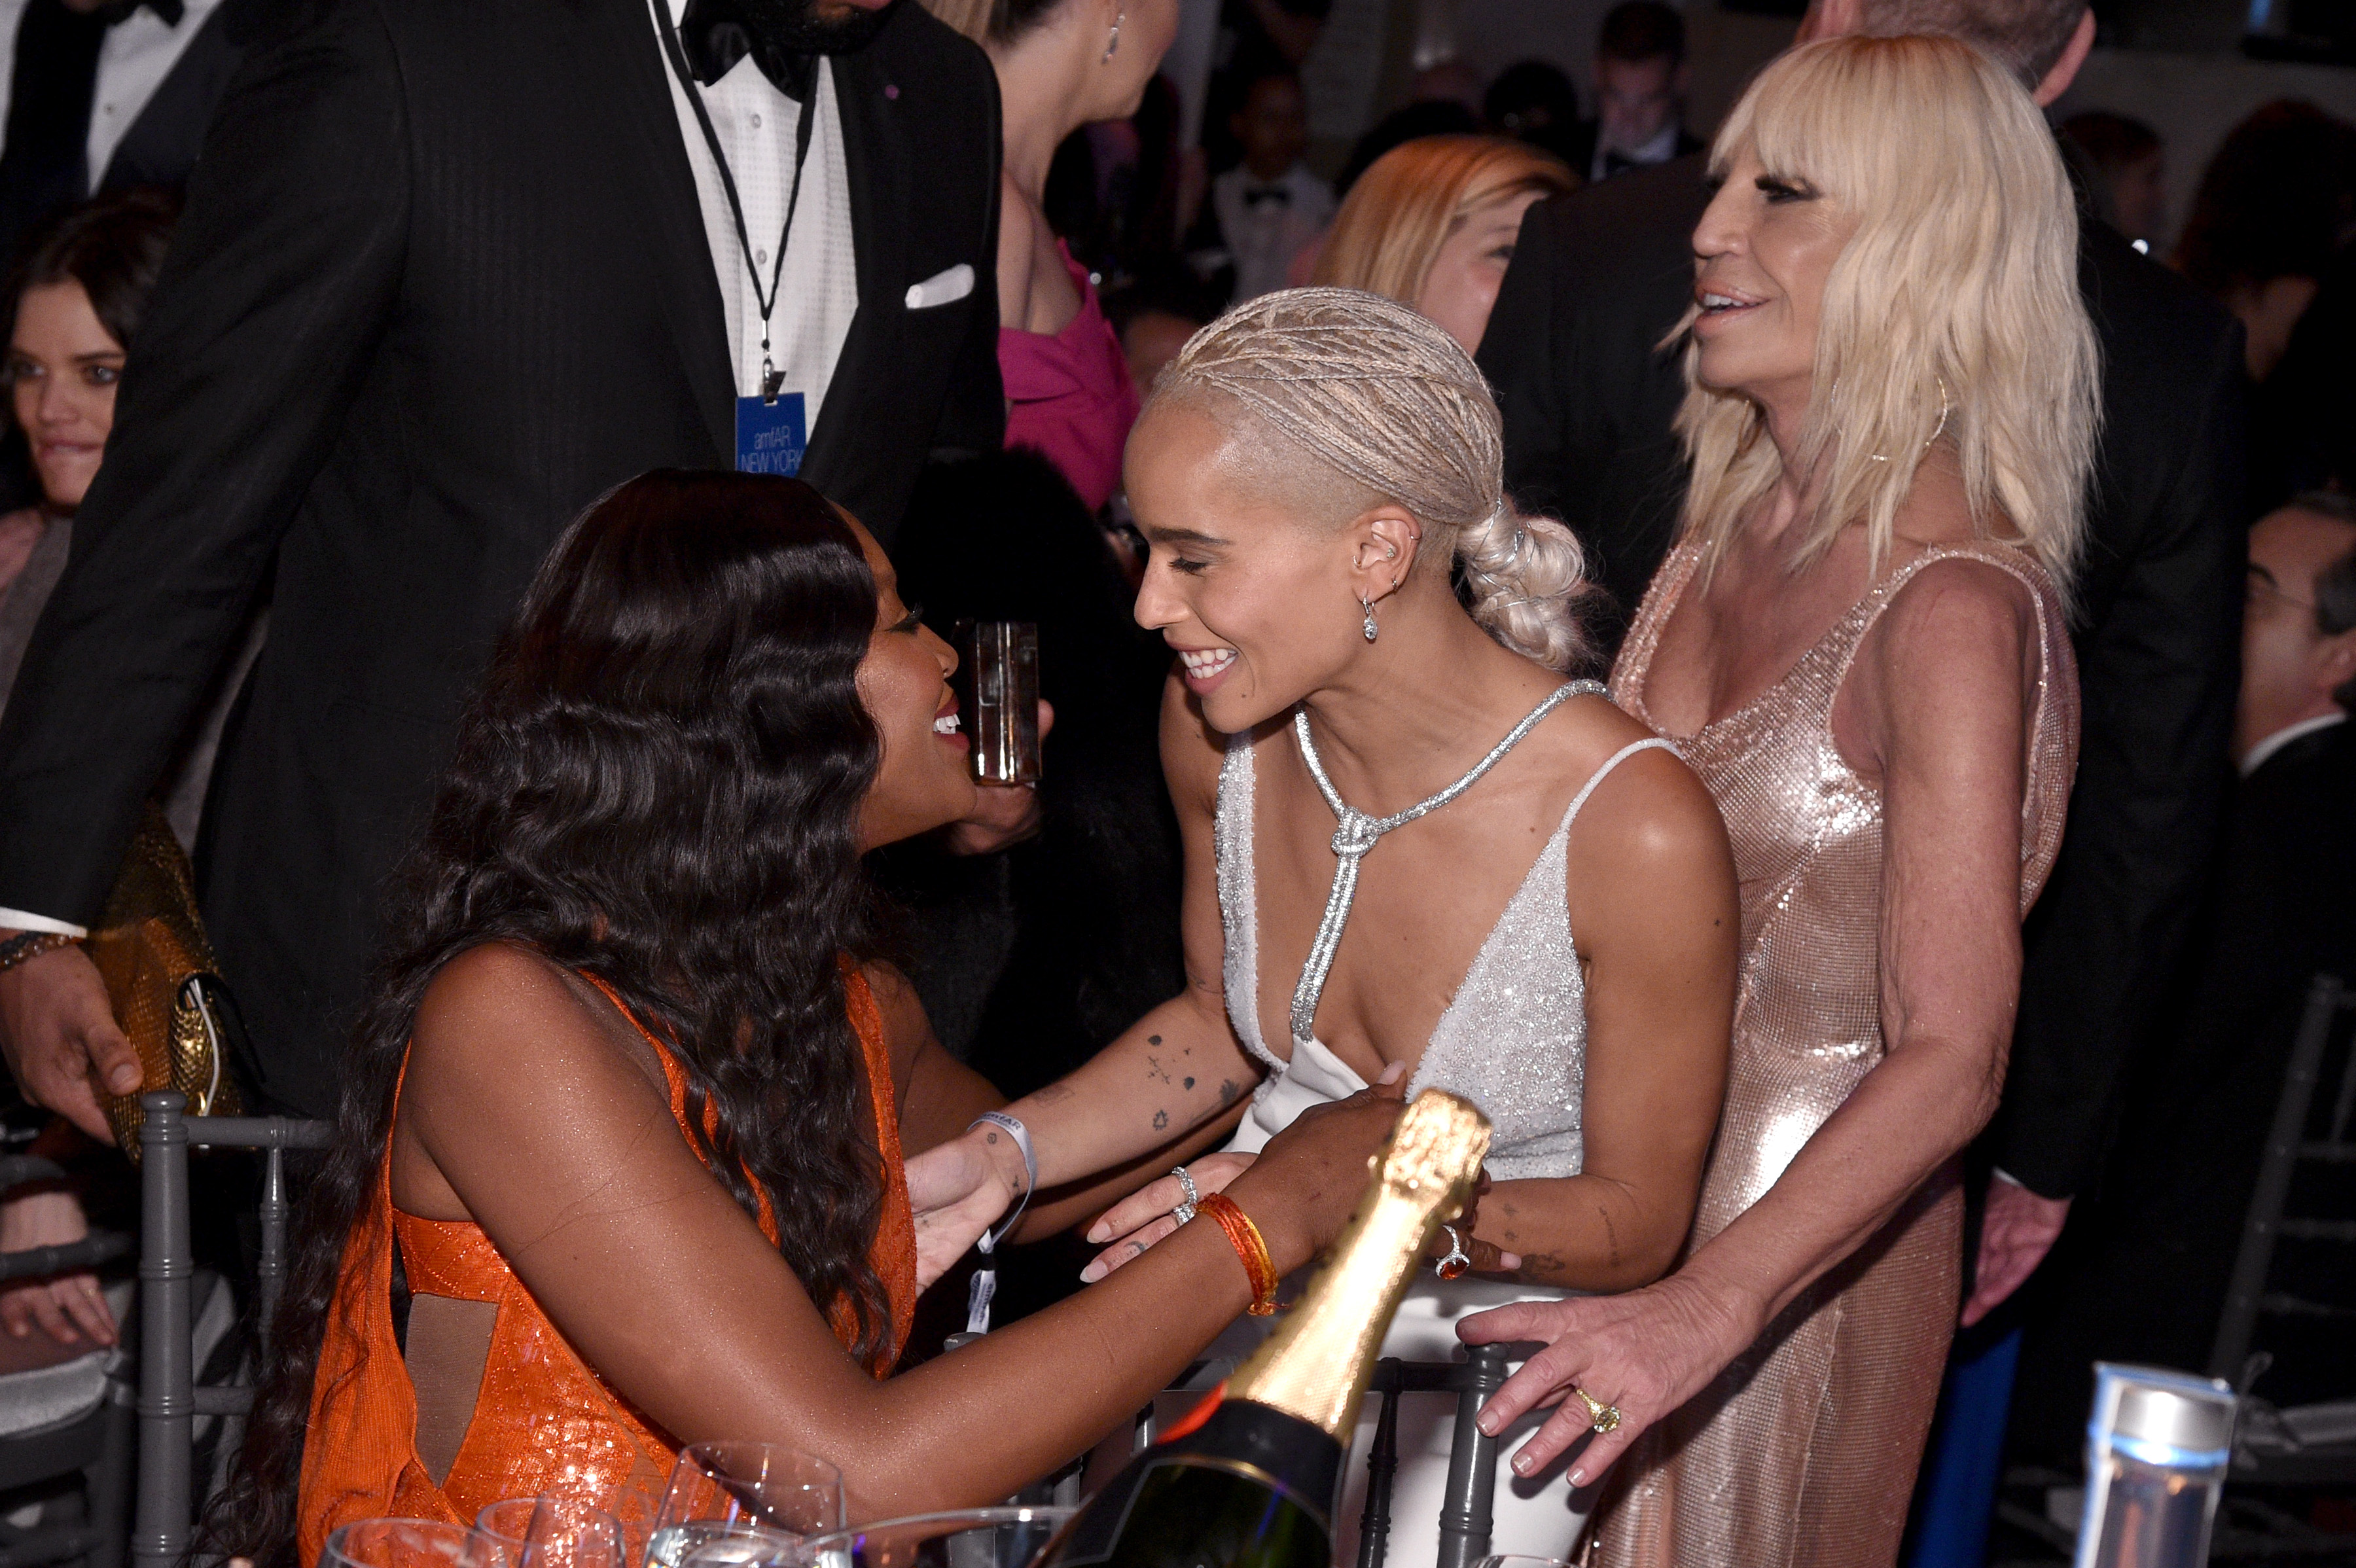 NEW YORK, NY - FEBRUARY 08:  Naomi Campbell Zoe Kravitz and Donatella Versace attend as Moet & Chandon Toasts to the amfAR New York Gala At Cipriani Wall Street at Cipriani Wall Street on February 8, 2017 in New York City.  (Photo by Bryan Bedder/Getty Images for Moet & Chandon)